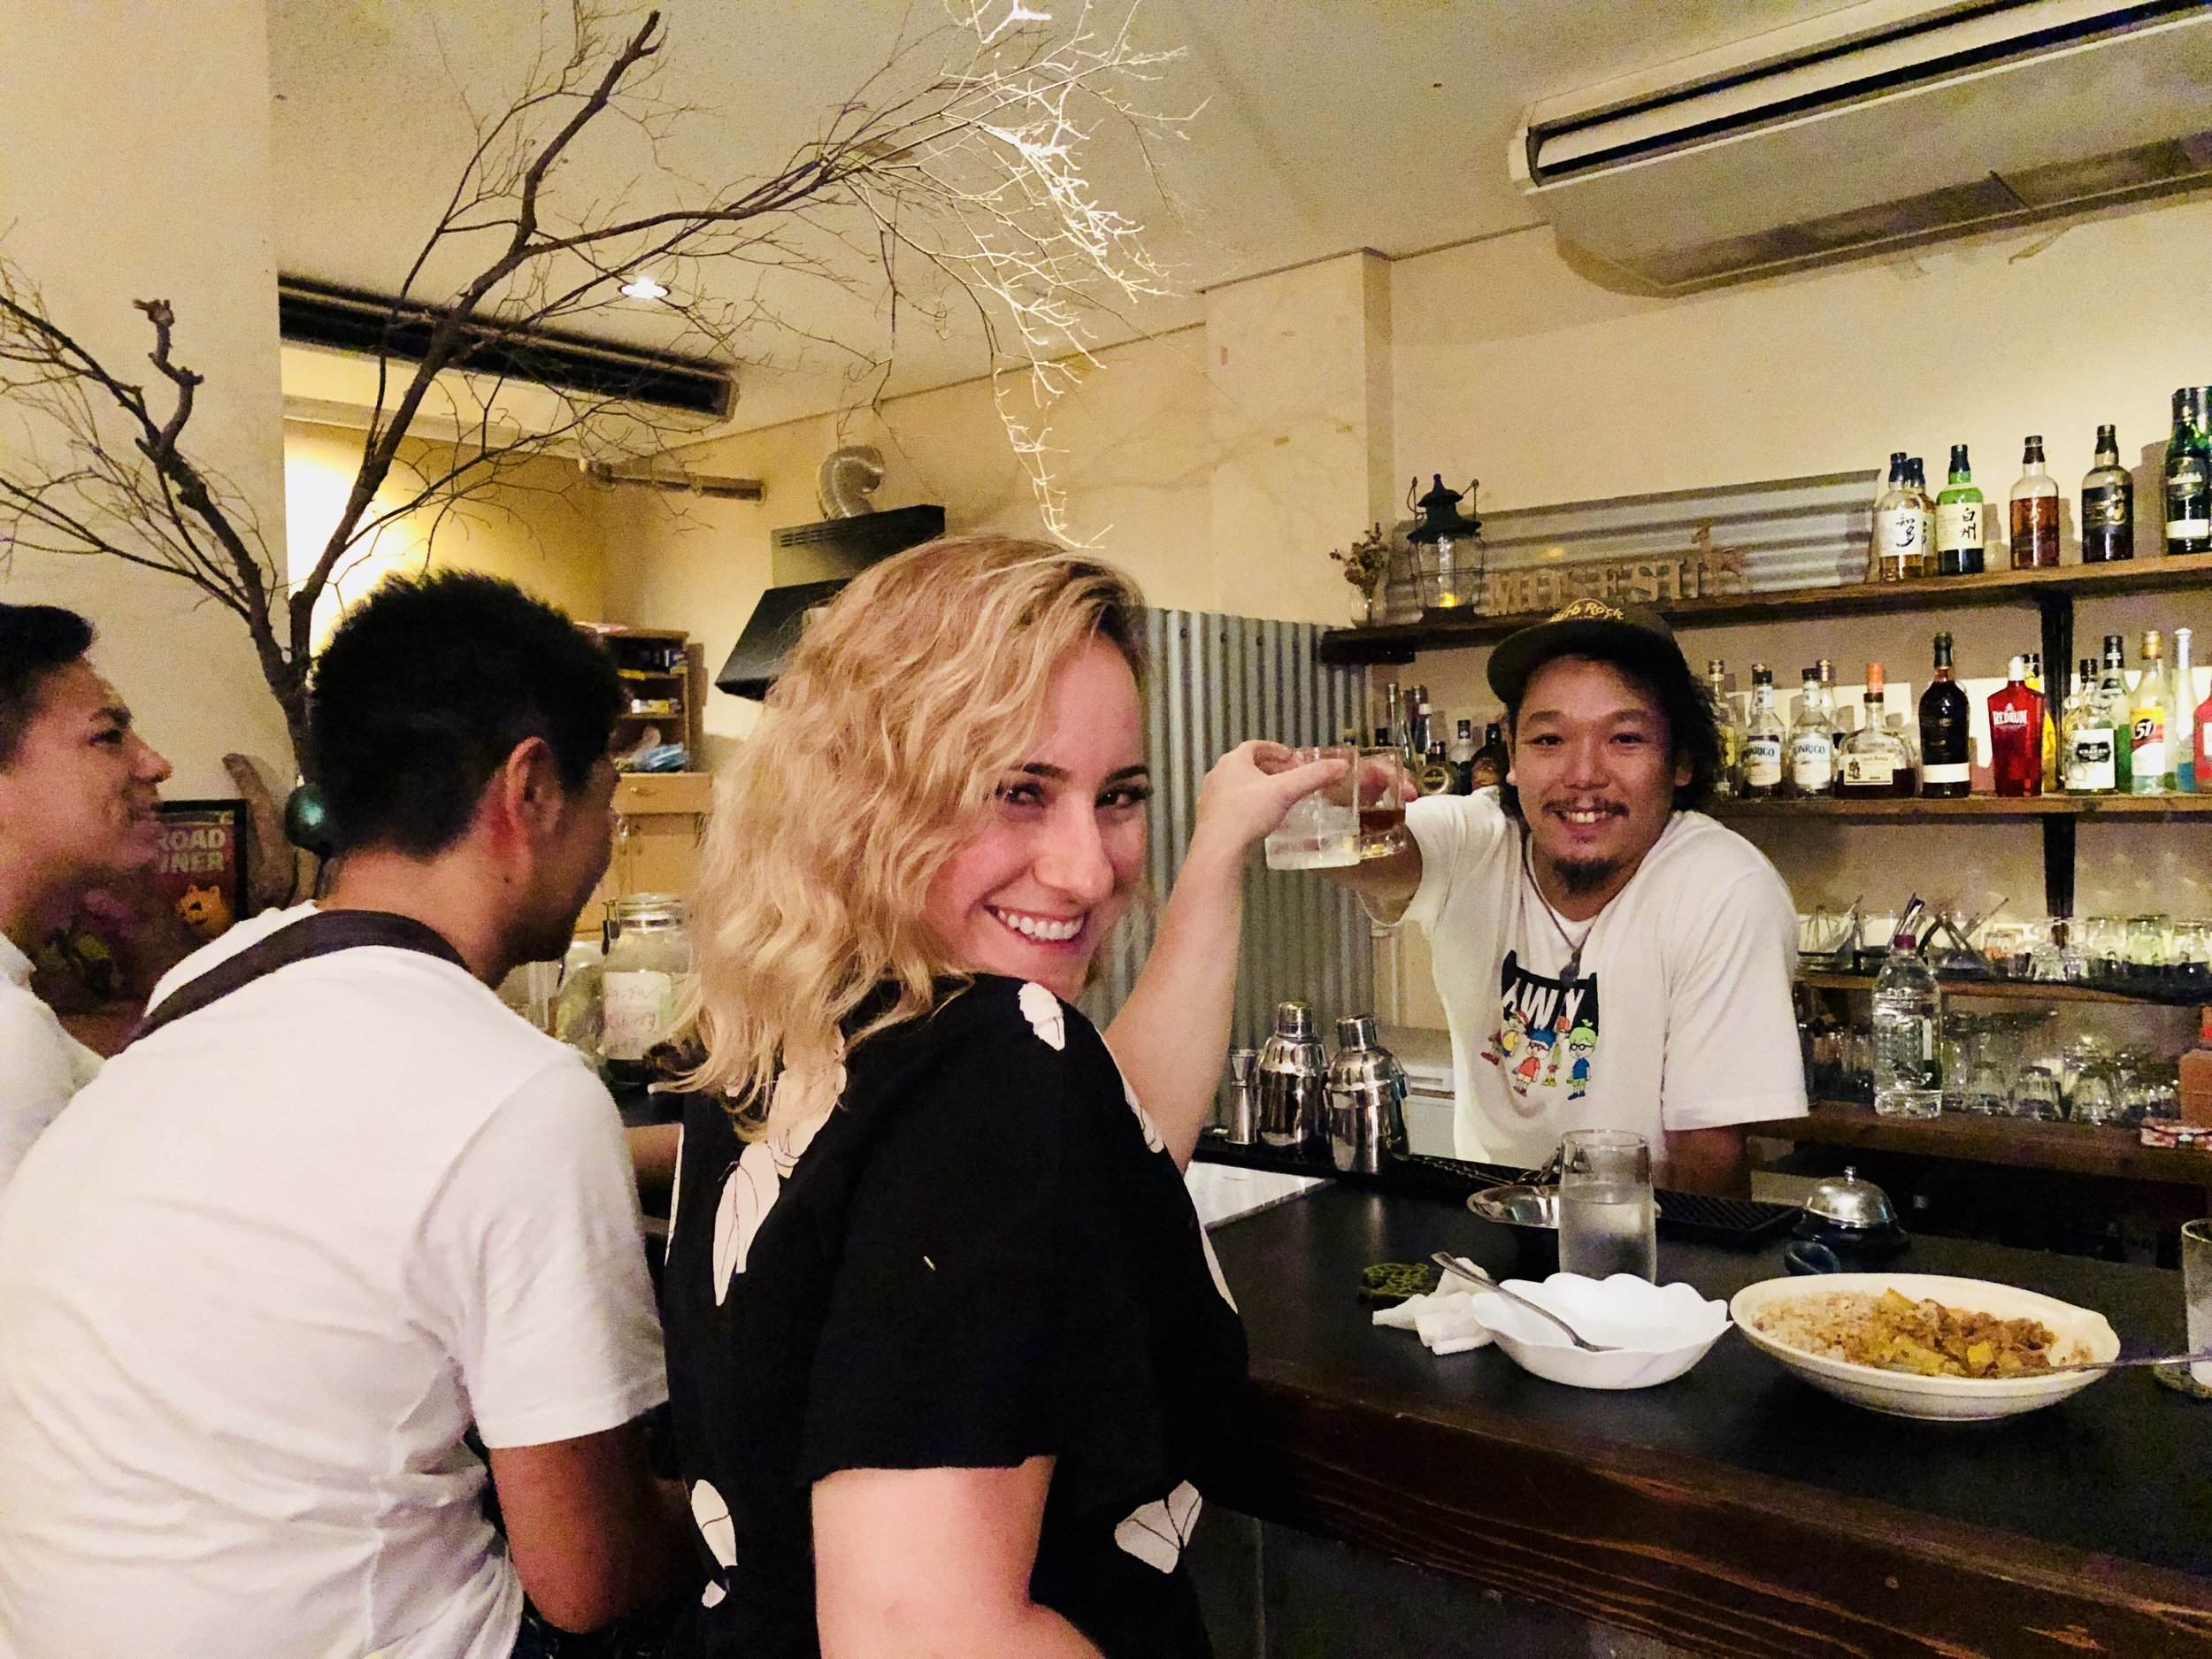 Talk foodie to me… - For more on Stephanie and her journey with Japan Food Trips, please listen to her feature on the Raw Urban Mobile Podcast, straight from the streets of Shibuya!